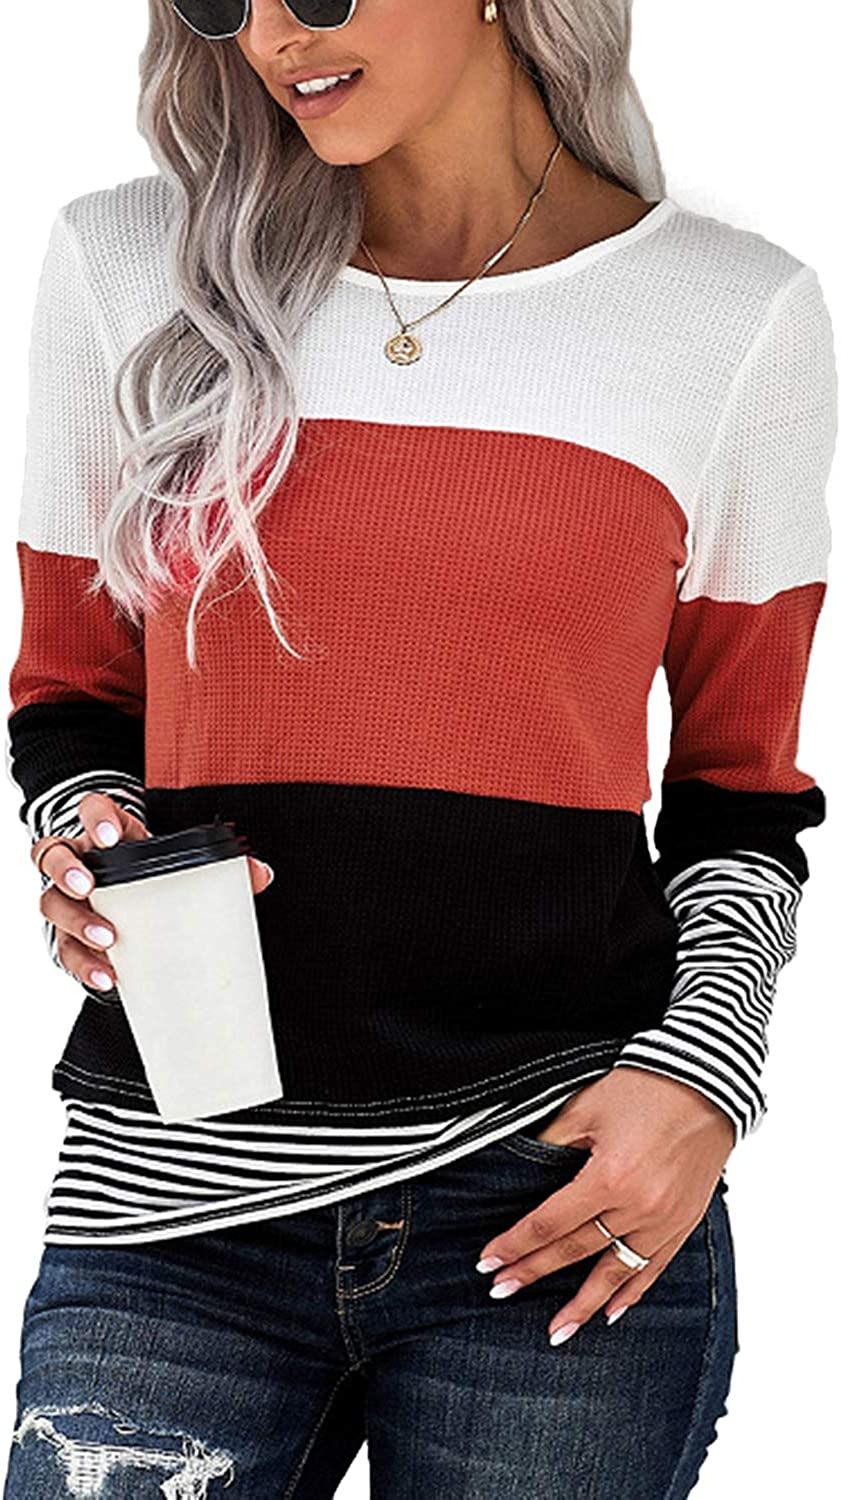 PESION Womens Waffle Knit Tops Long Sleeve shopping lowest price Striped Color Shirts